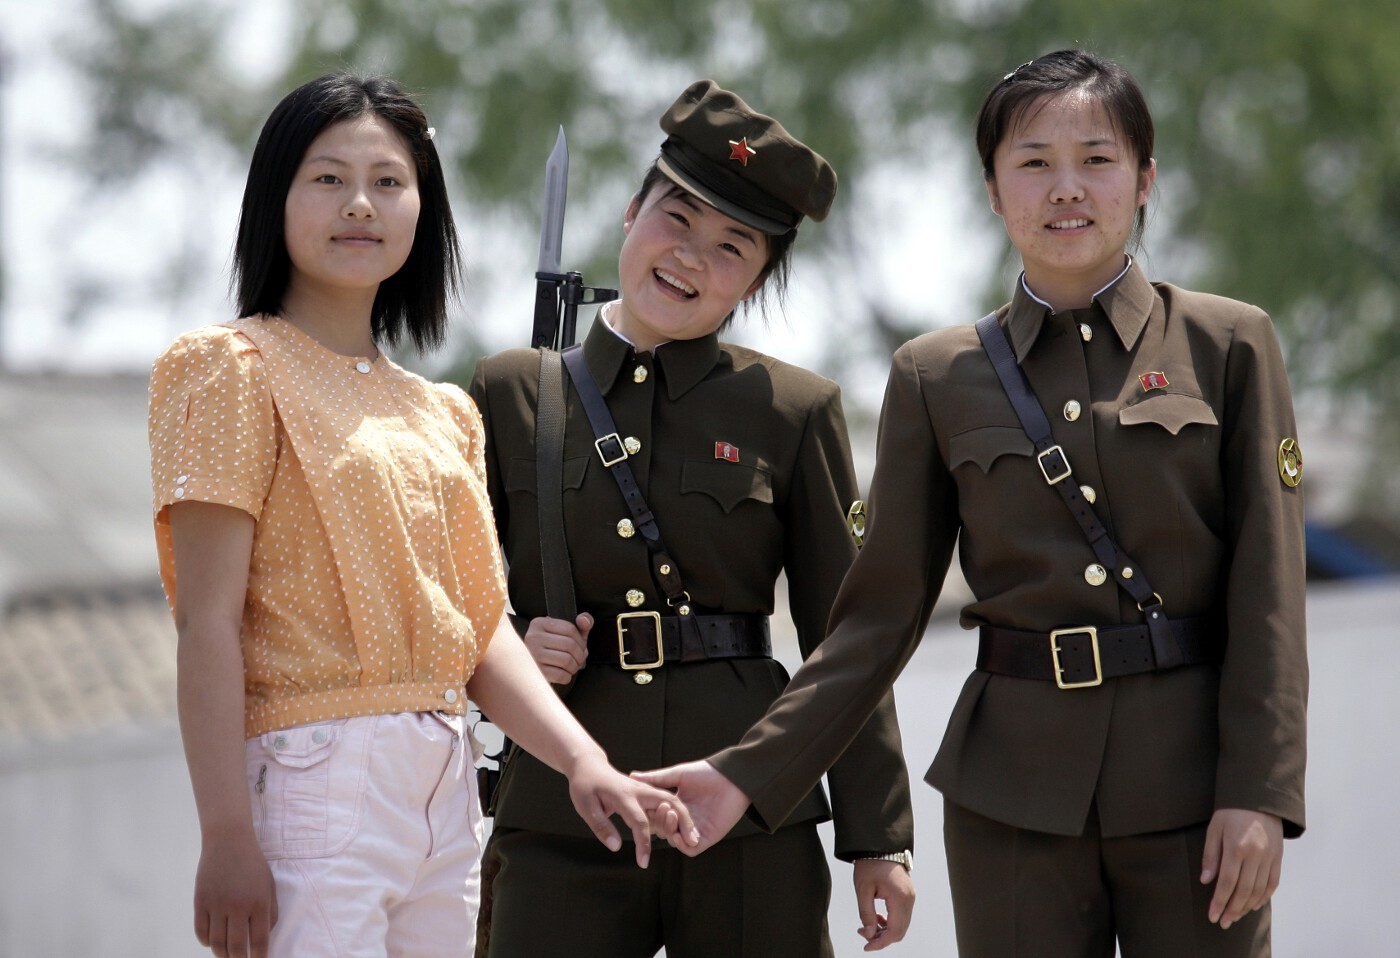 Life in North Korea 1